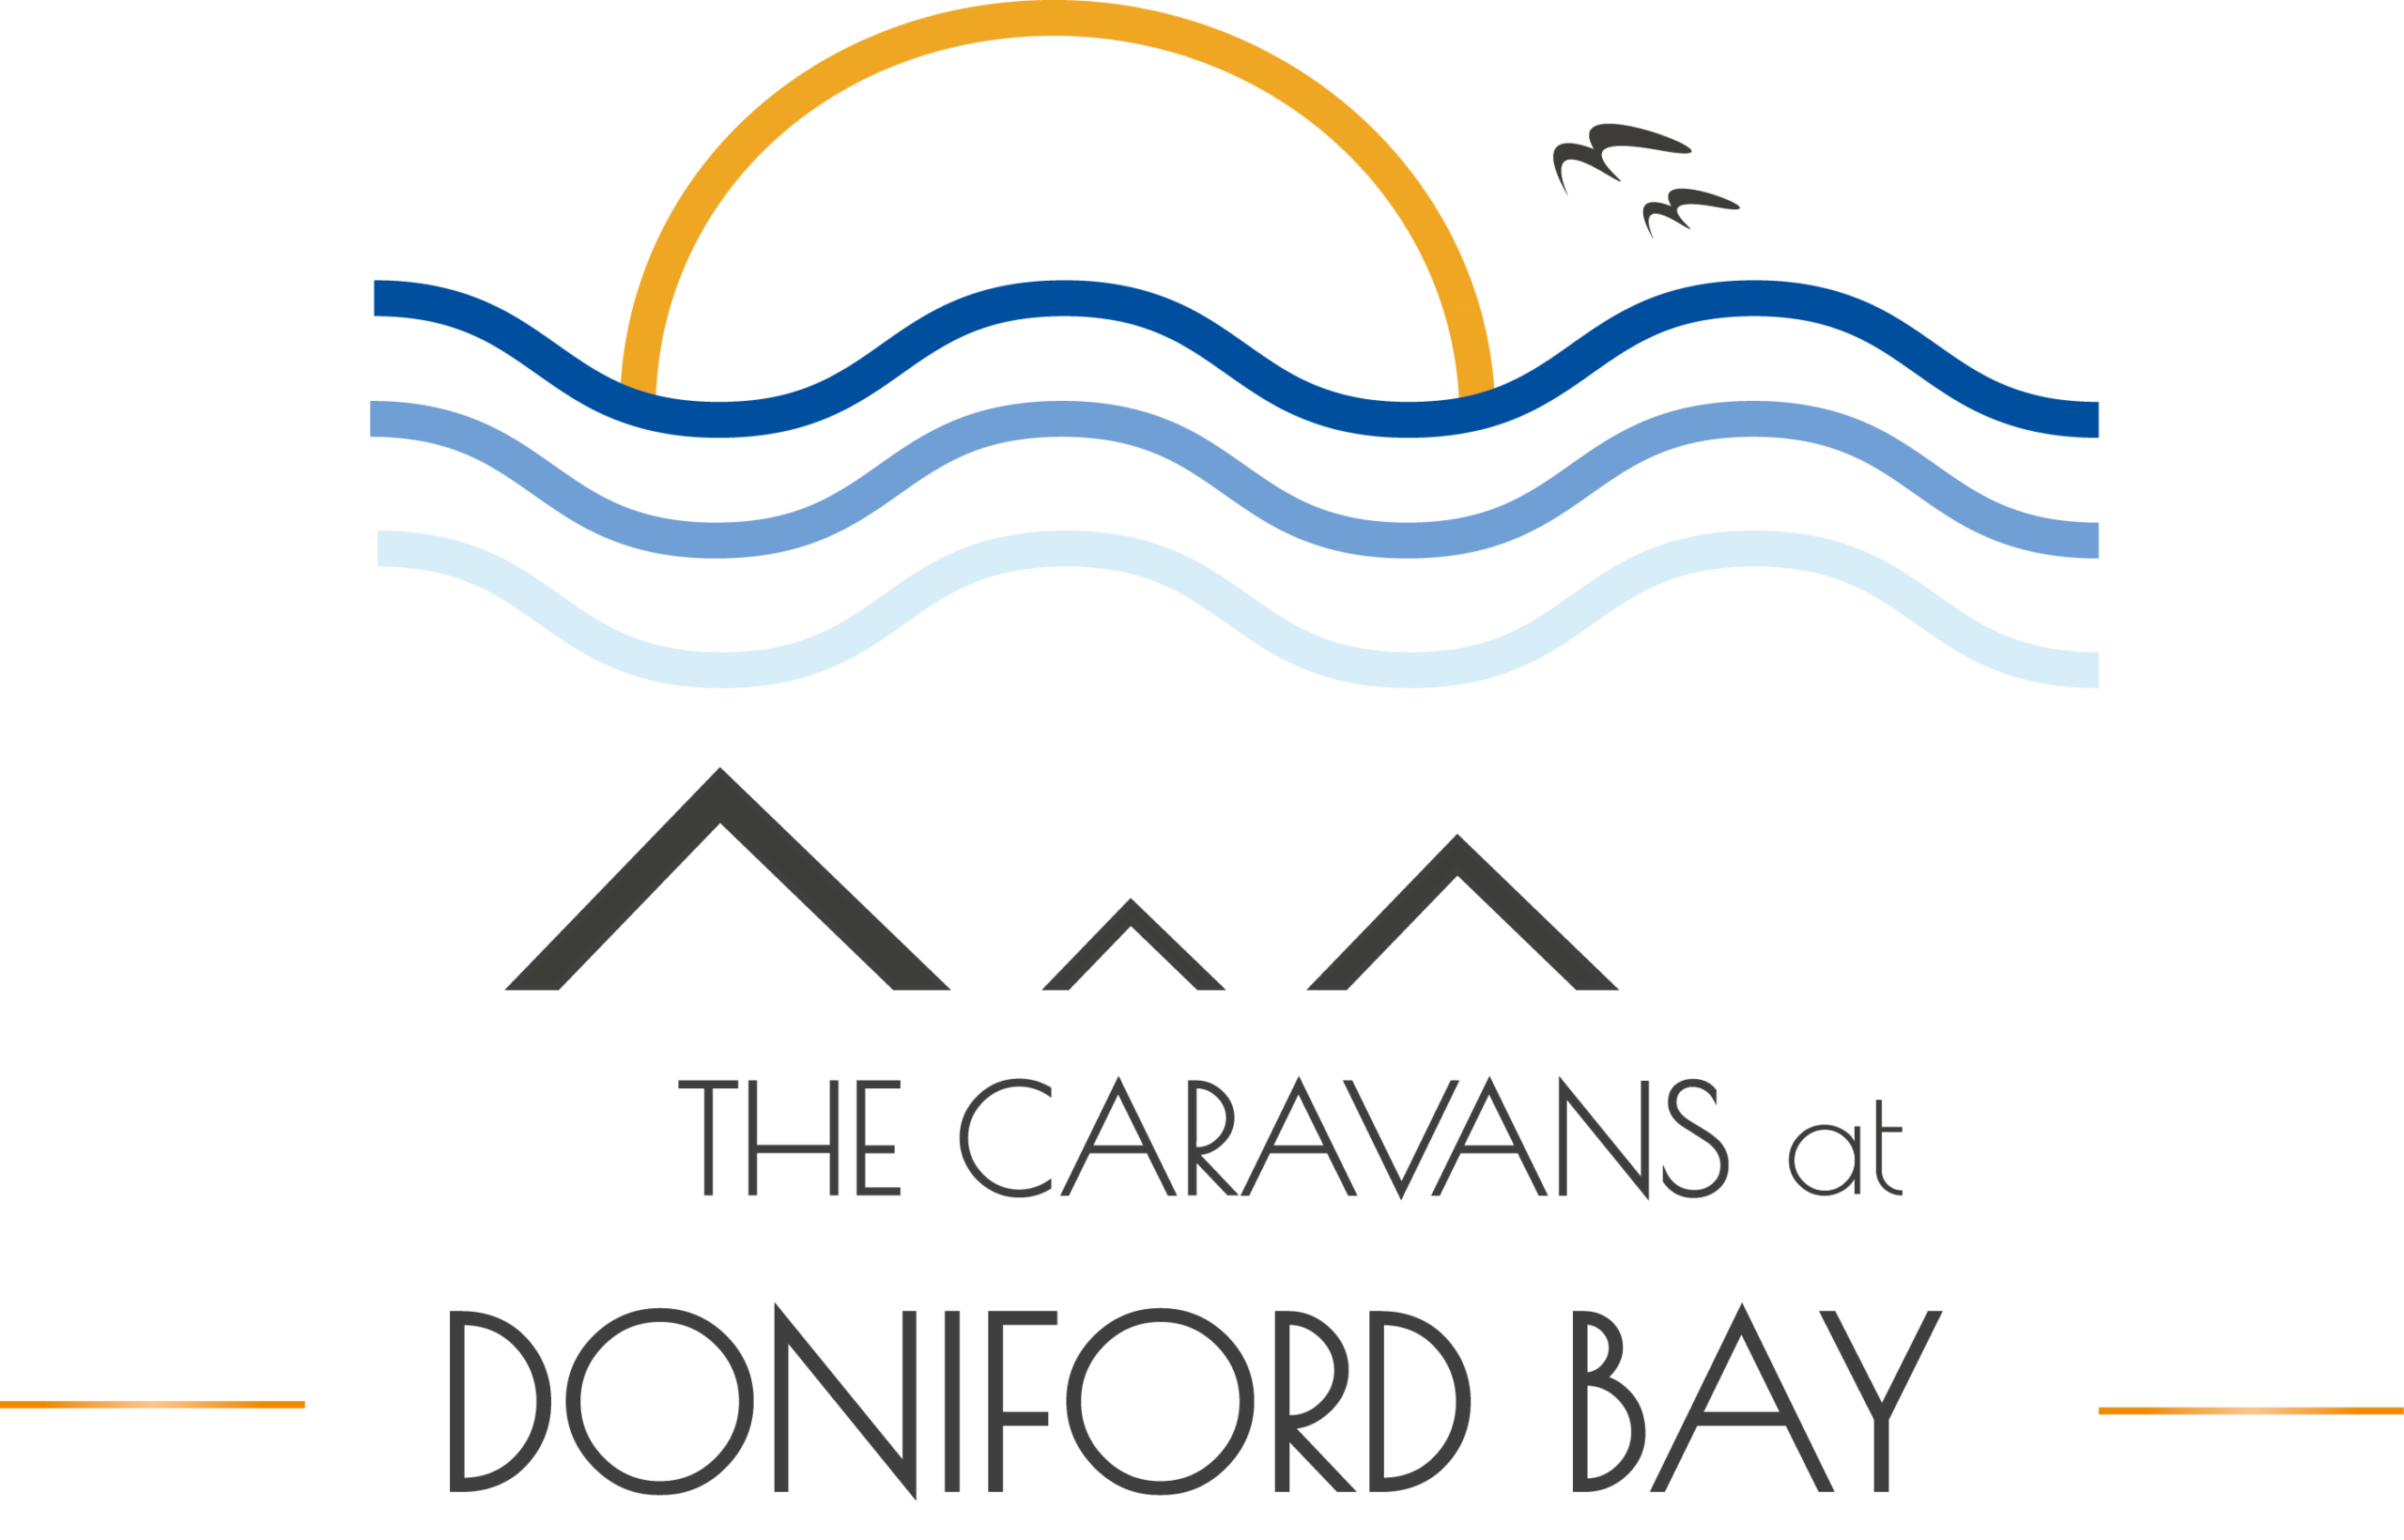 The Caravans at Doniford Bay